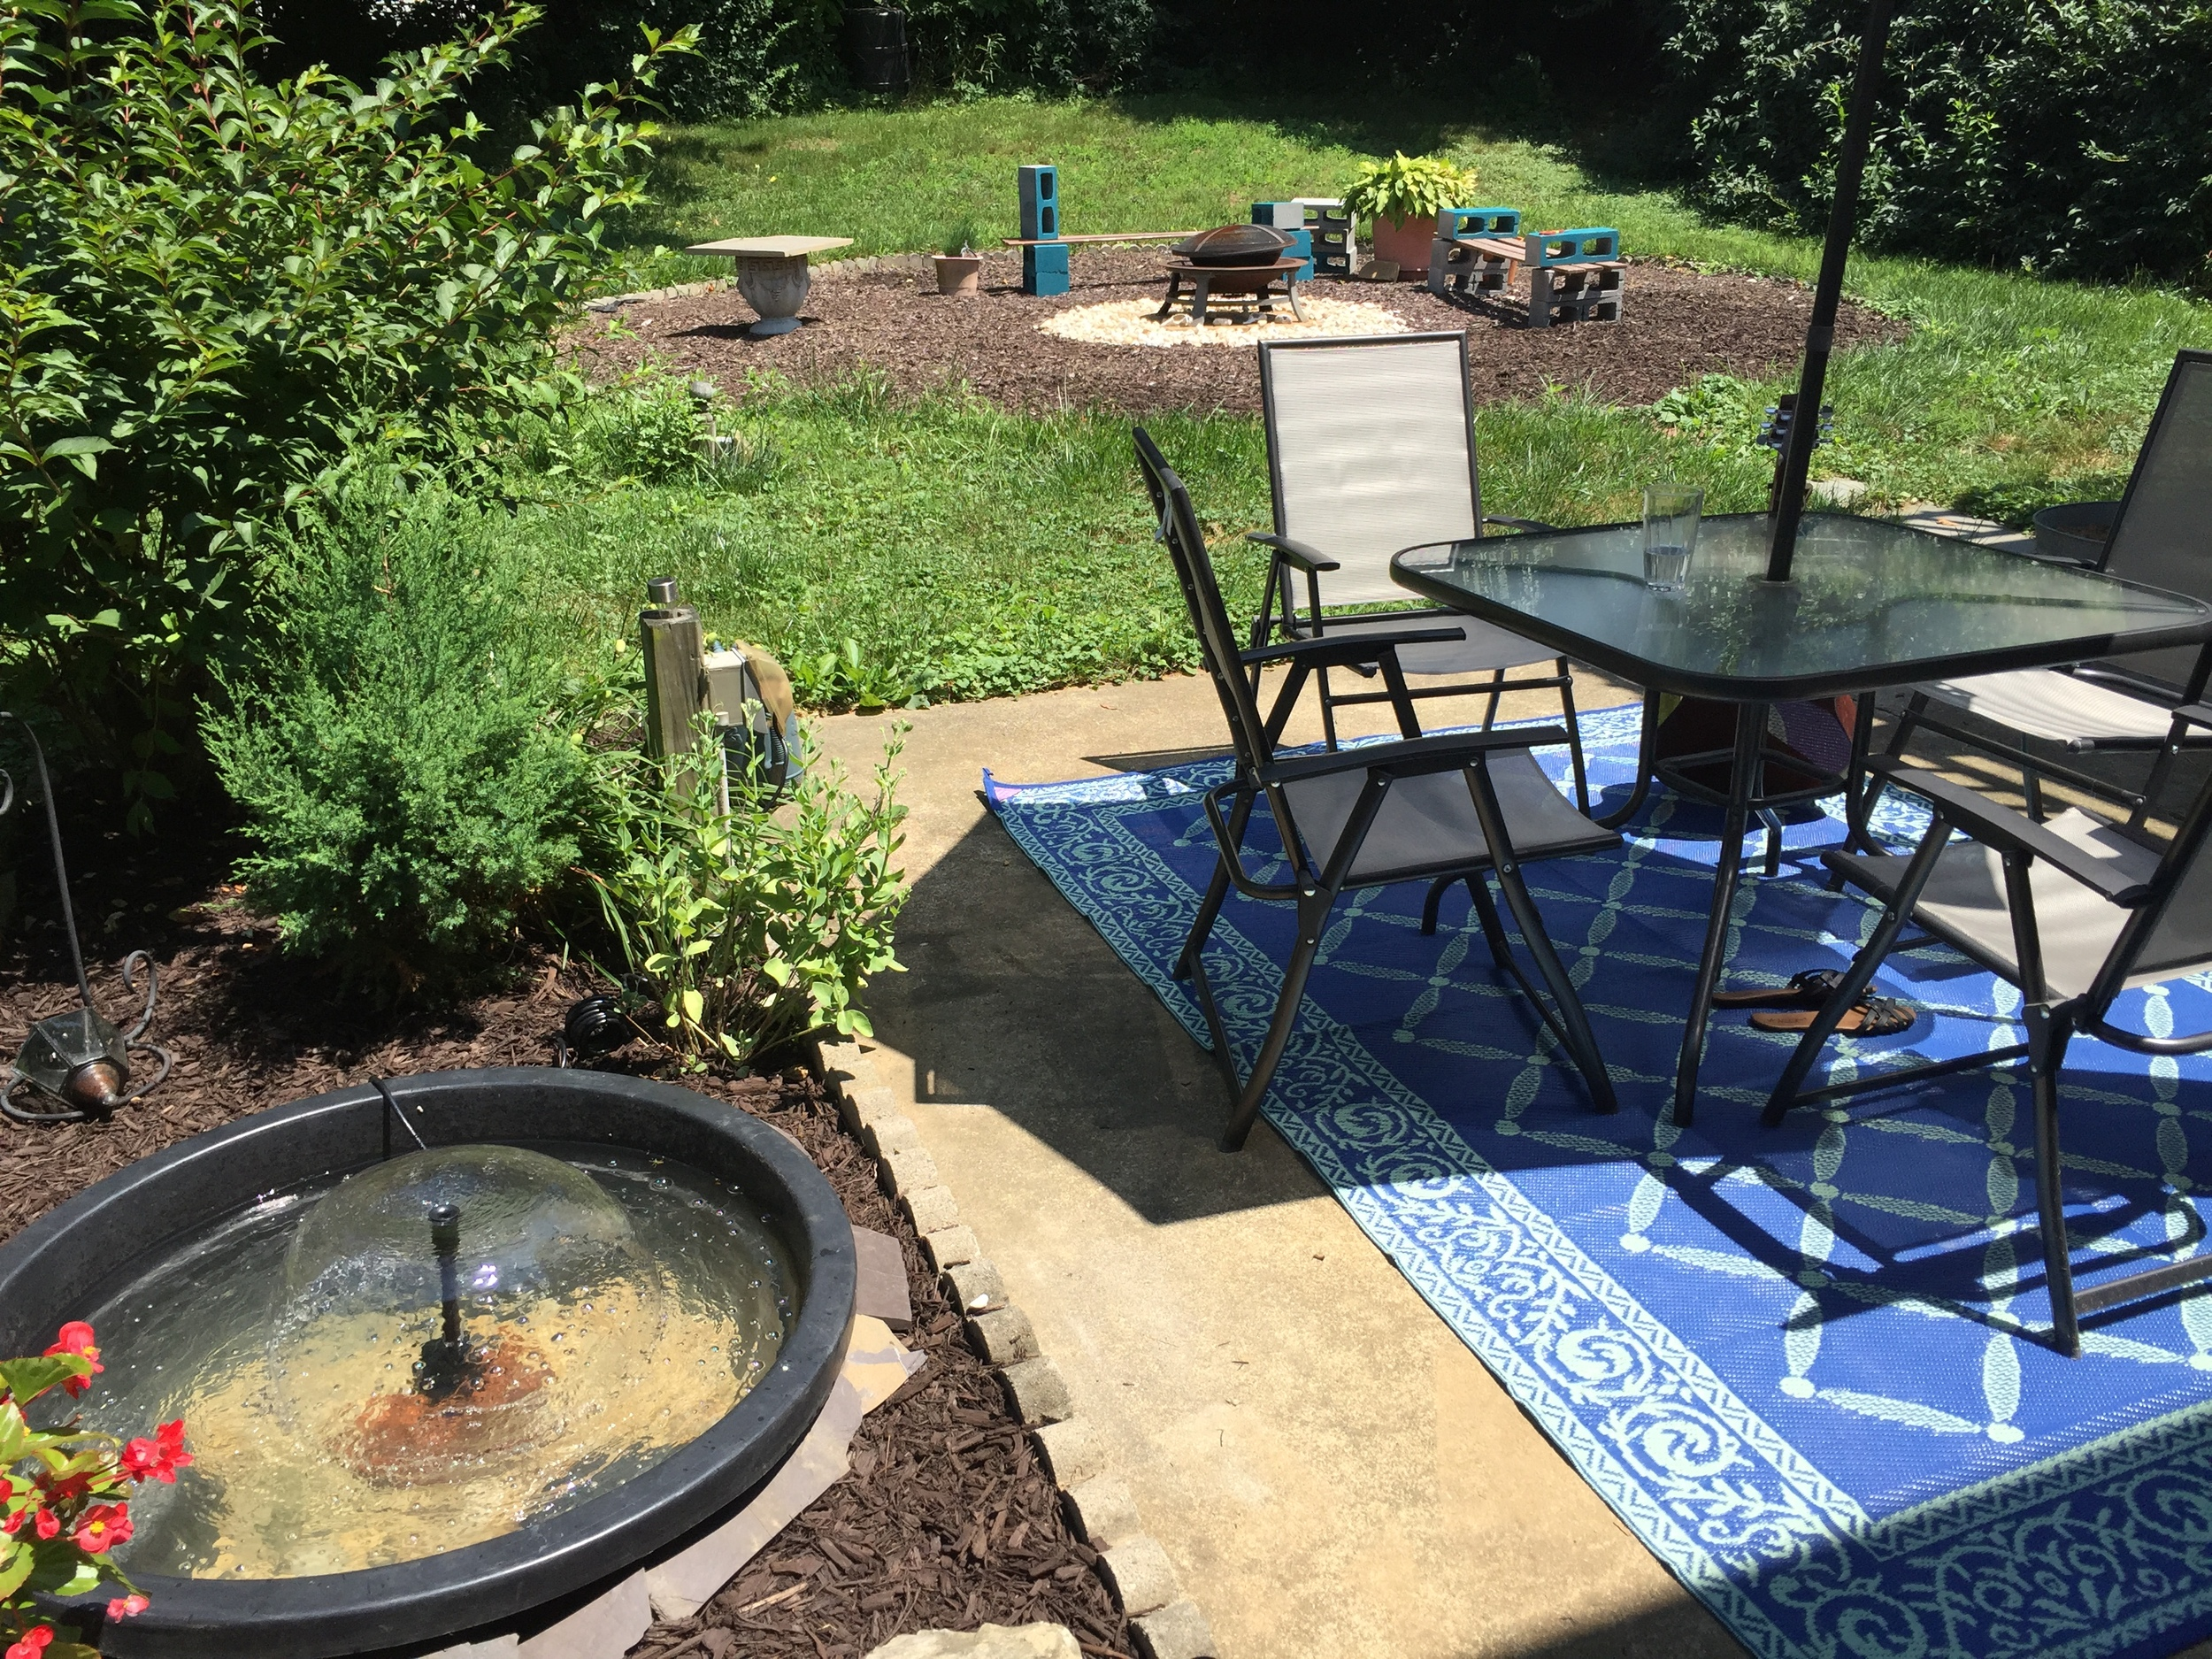 A view of my water fountain along with the patio and fire pit area I created in back.